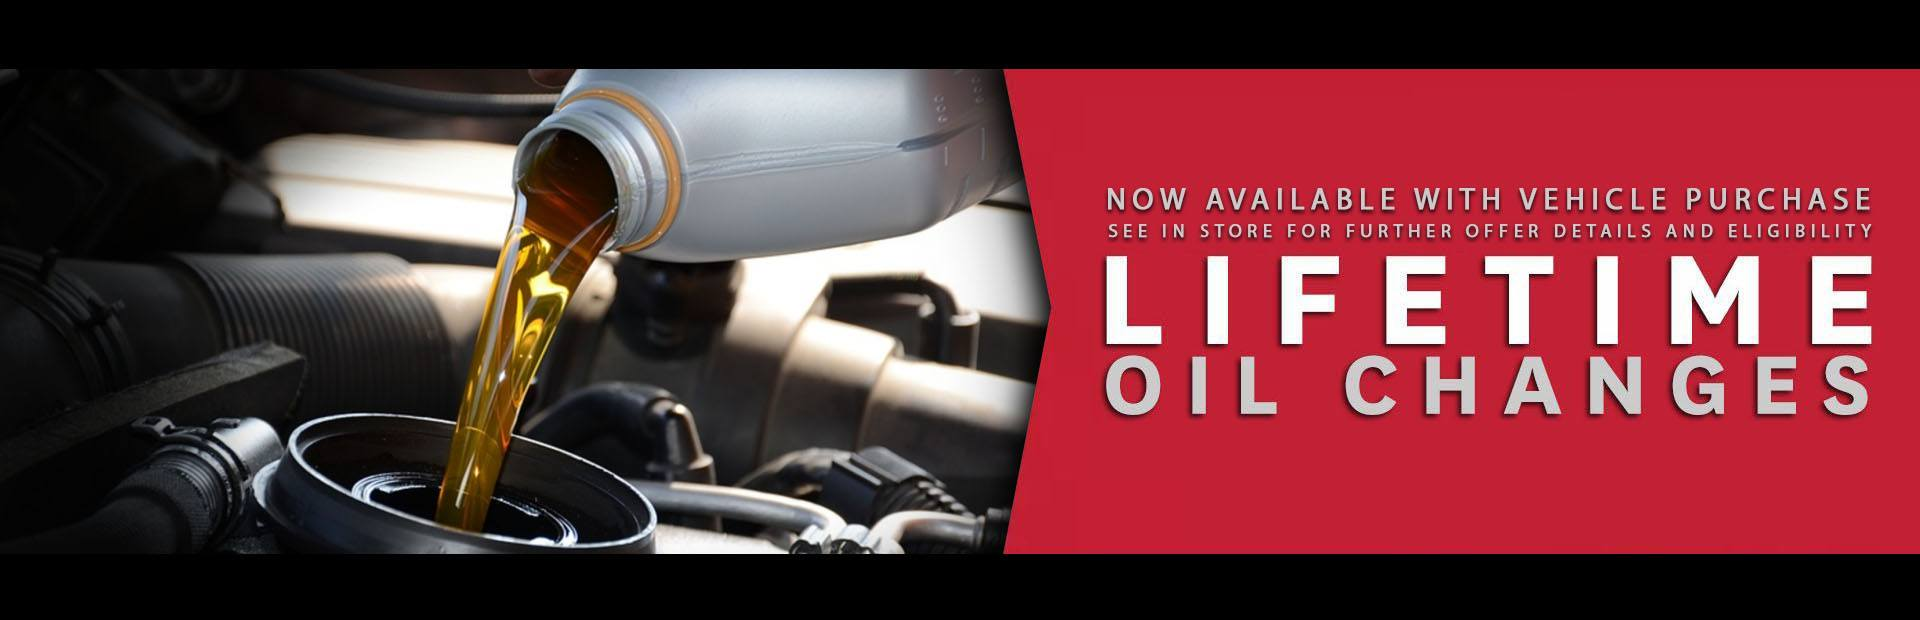 MCFA - LIFE TIME OIL CHANGES - DRAFTv3 - Apr 2018